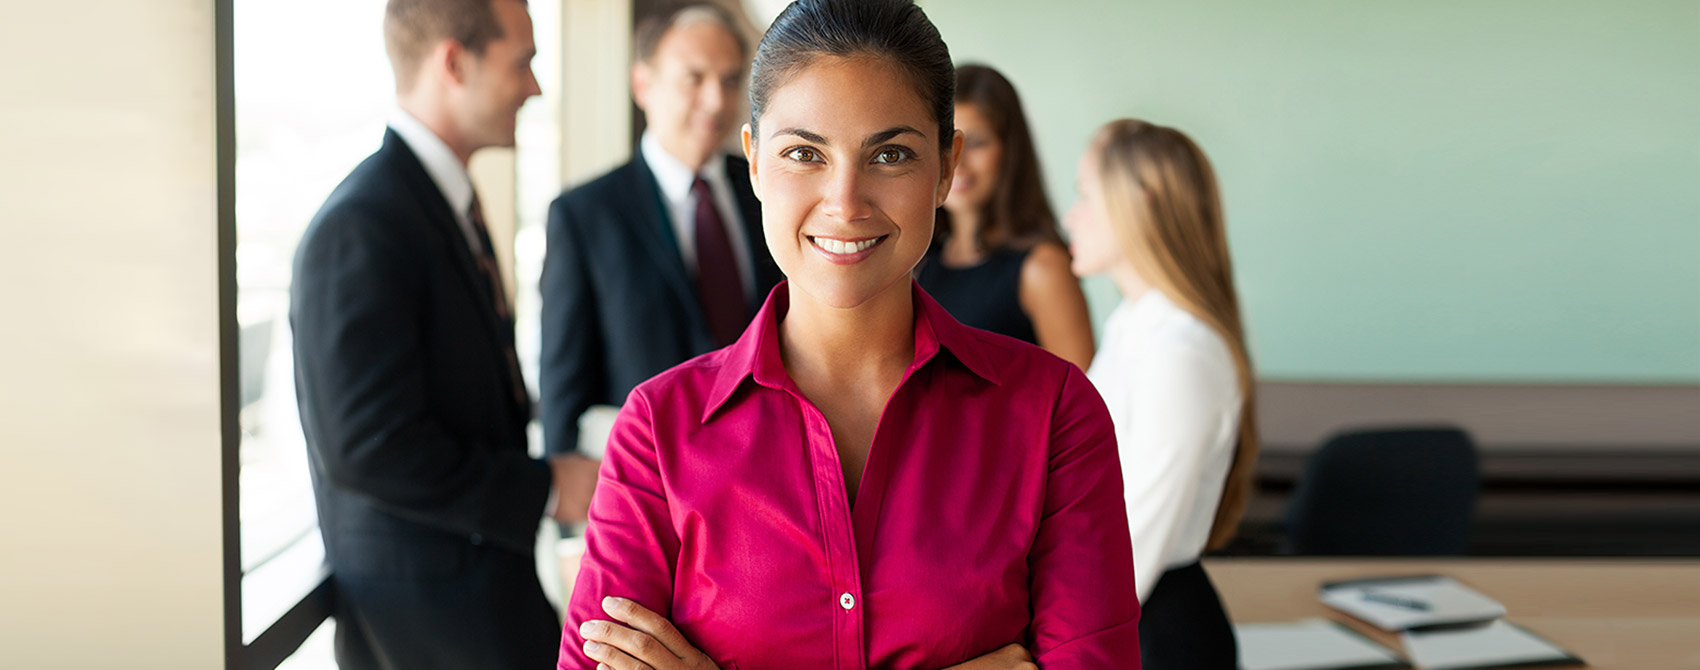 Confident female HR professional smiles at the camera while colleagues chat in the background.